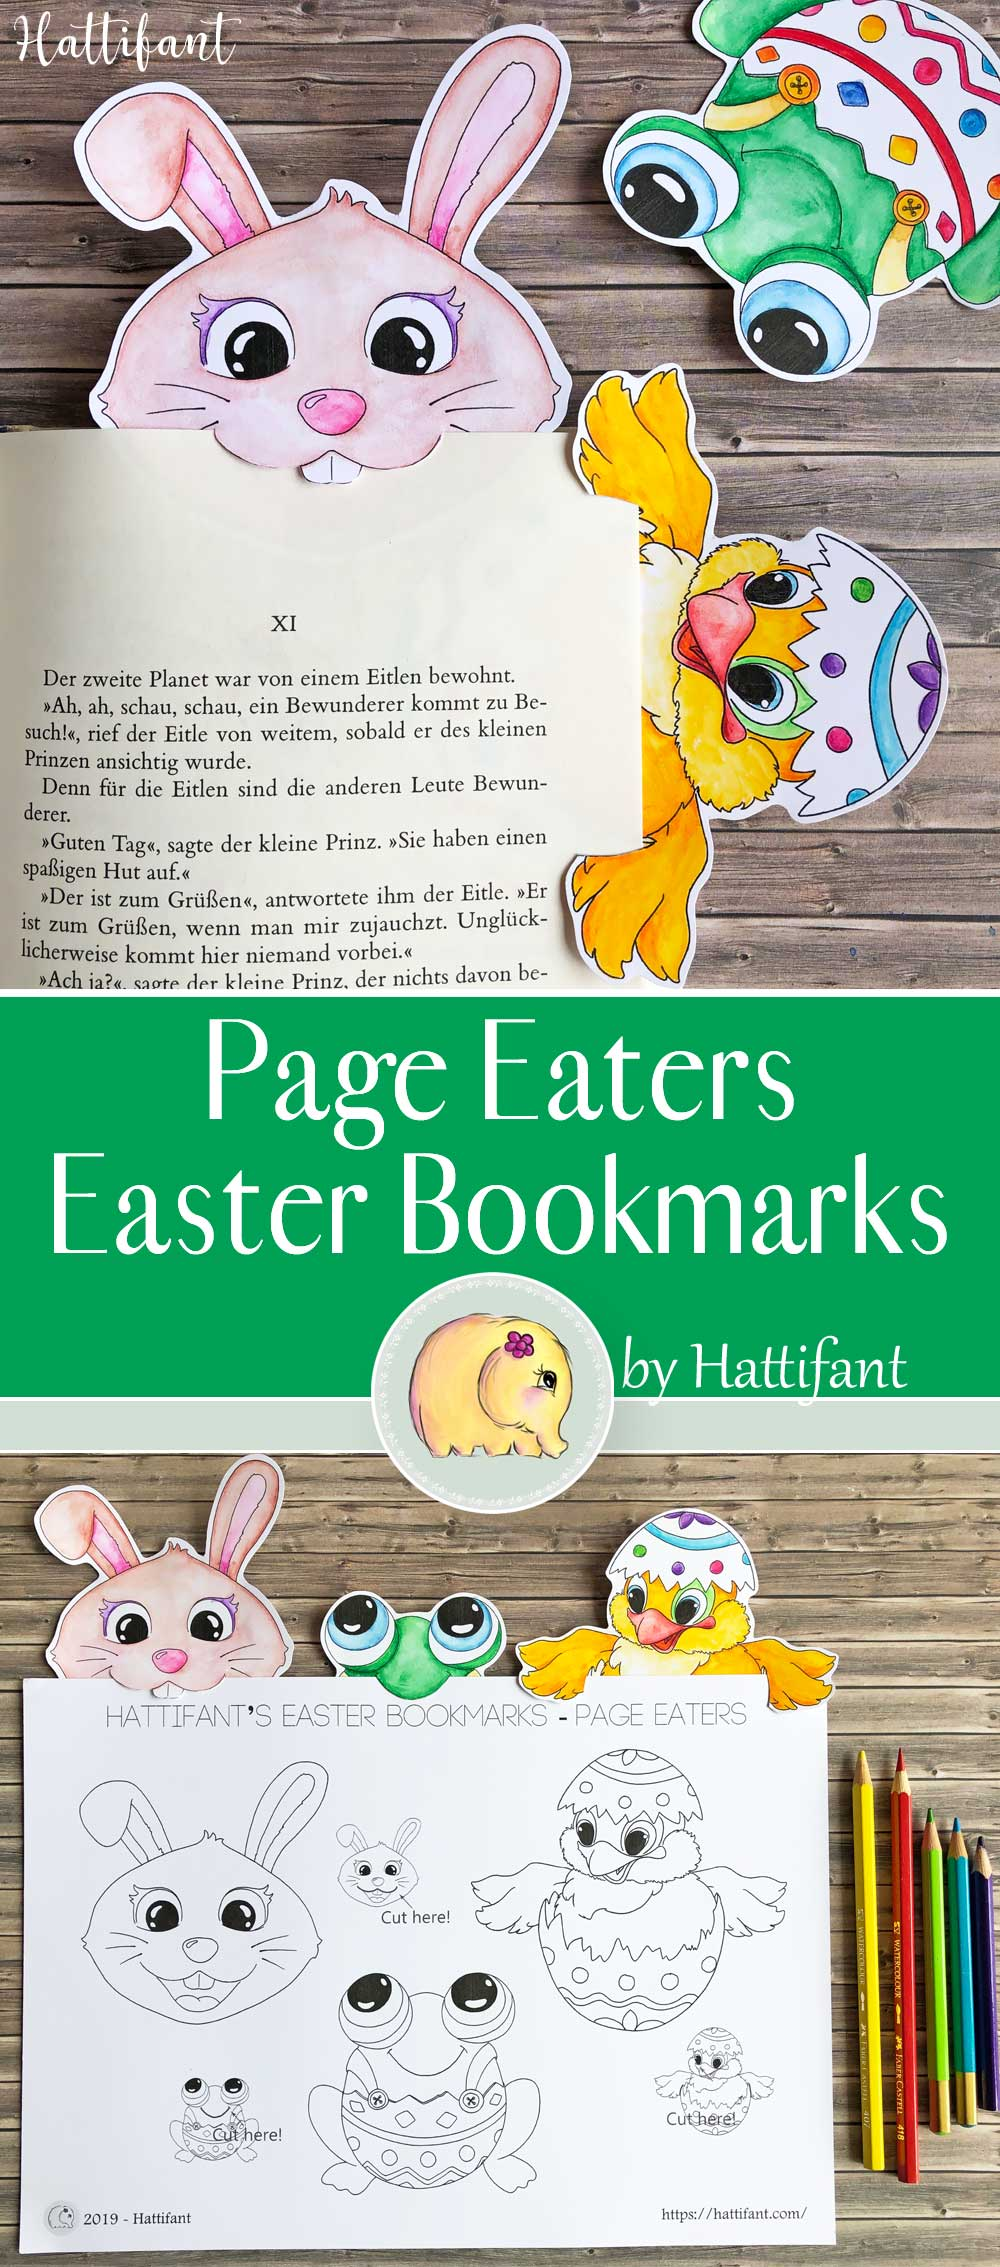 Hattifant's Easter Bookmark Page Eaters Bunny Frog Chicken Egg